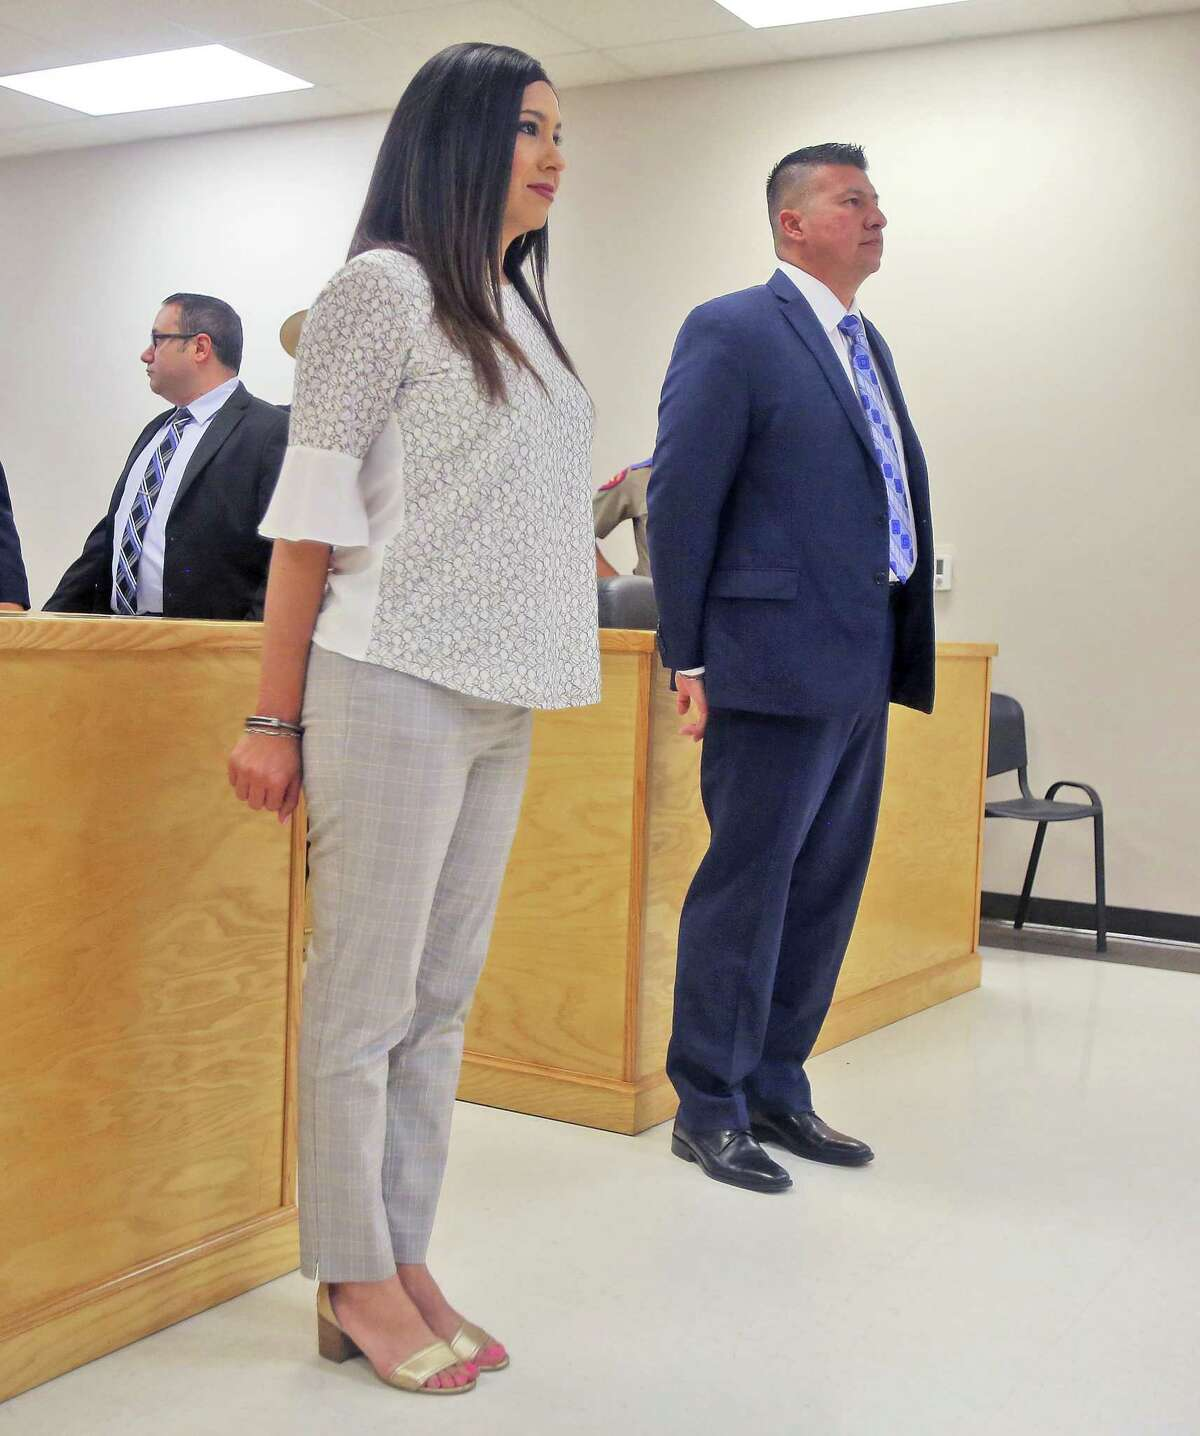 """Edinburg, Texas Mayor Richard Molina and his wife Dalia Molina are arraigned before Justice of the Peace Precinct 2 Jaime """"Jerry"""" Muñoz on illegal voting and engaging in organized election fraud charges on Thursday, April 25, 2019, in Pharr, Texas. (Richard Molina/The Monitor via AP)"""